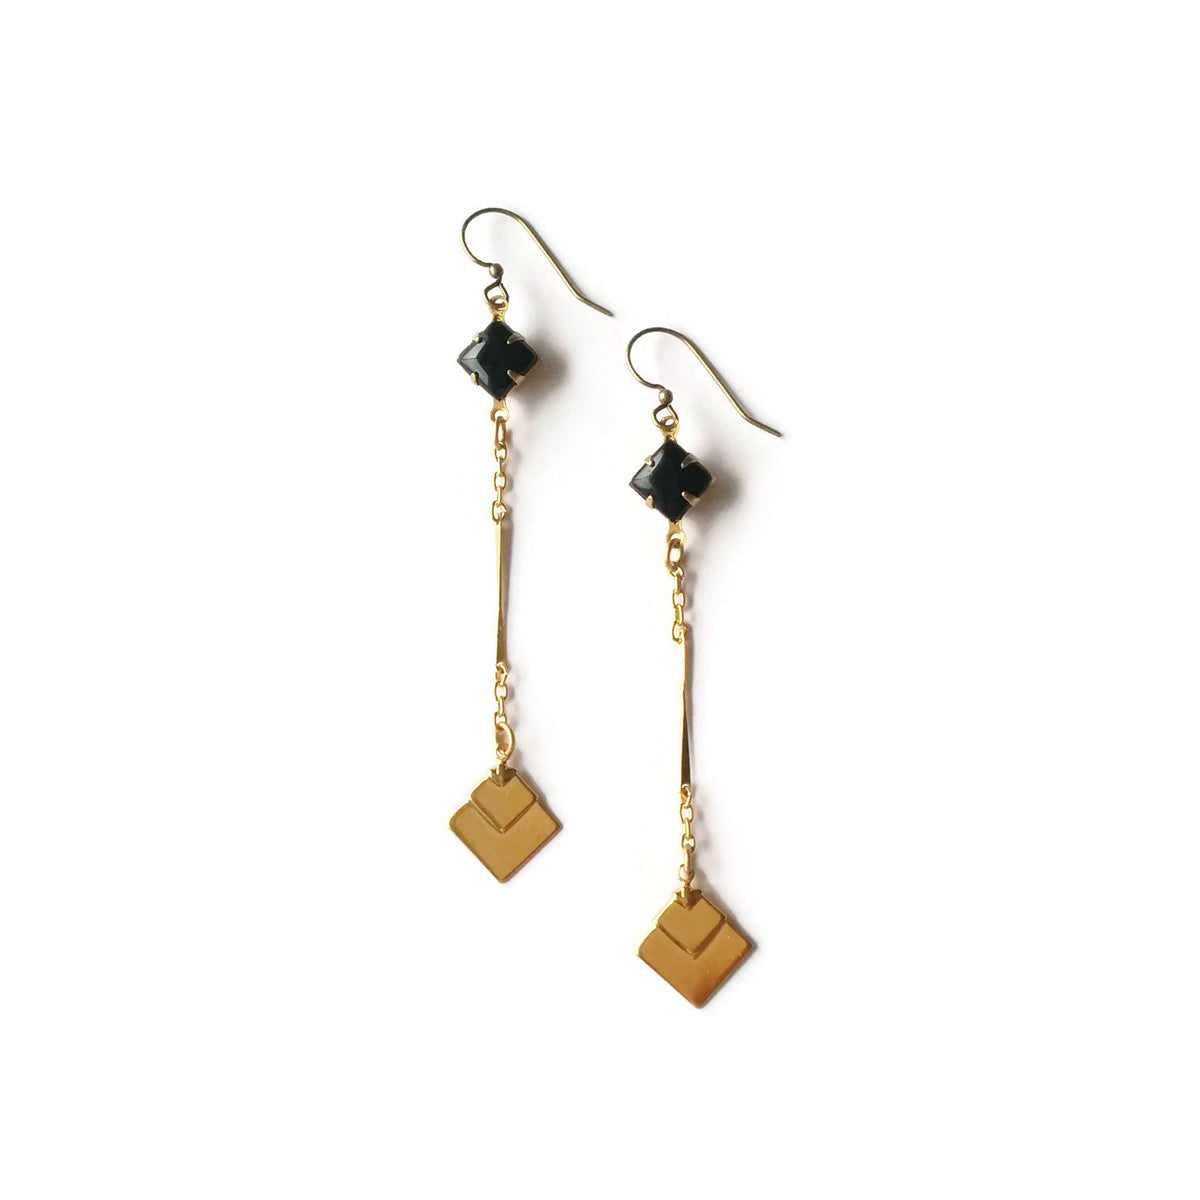 Black earrings with golden fans geometric jewellery